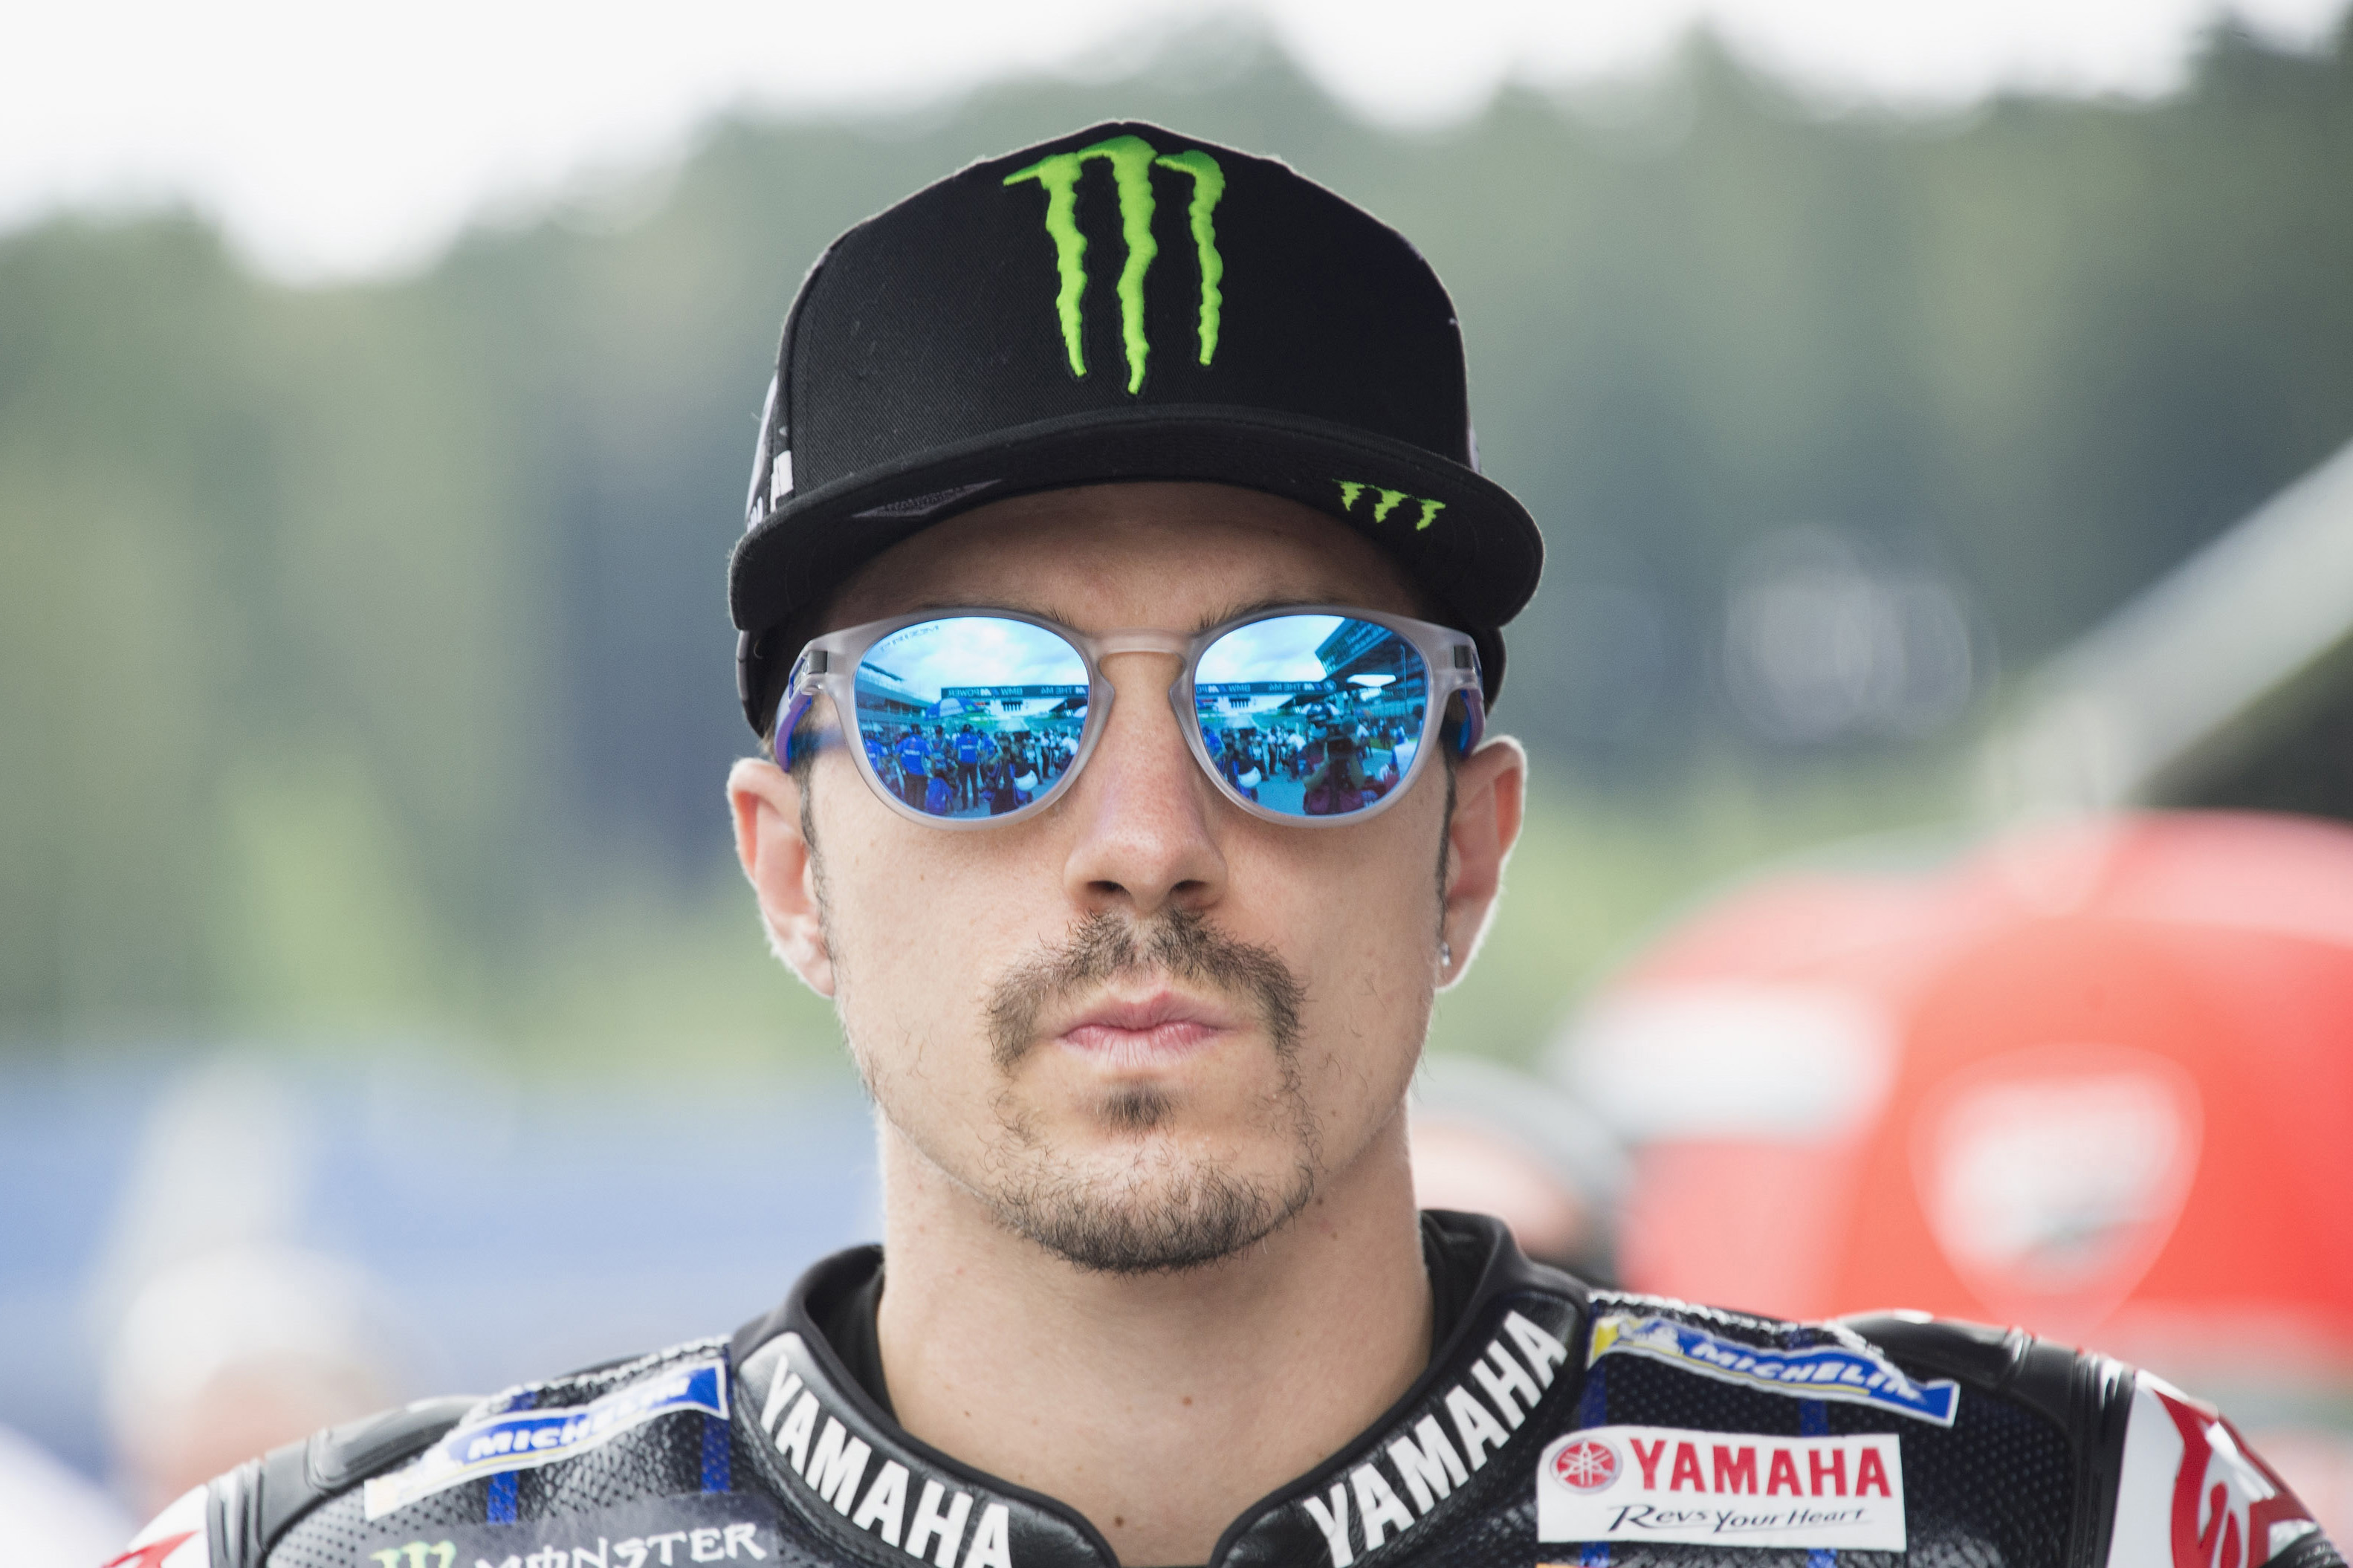 Maverick Viñales dodges disaster after jumping off bike at 228 kph in Styrian MotoGP